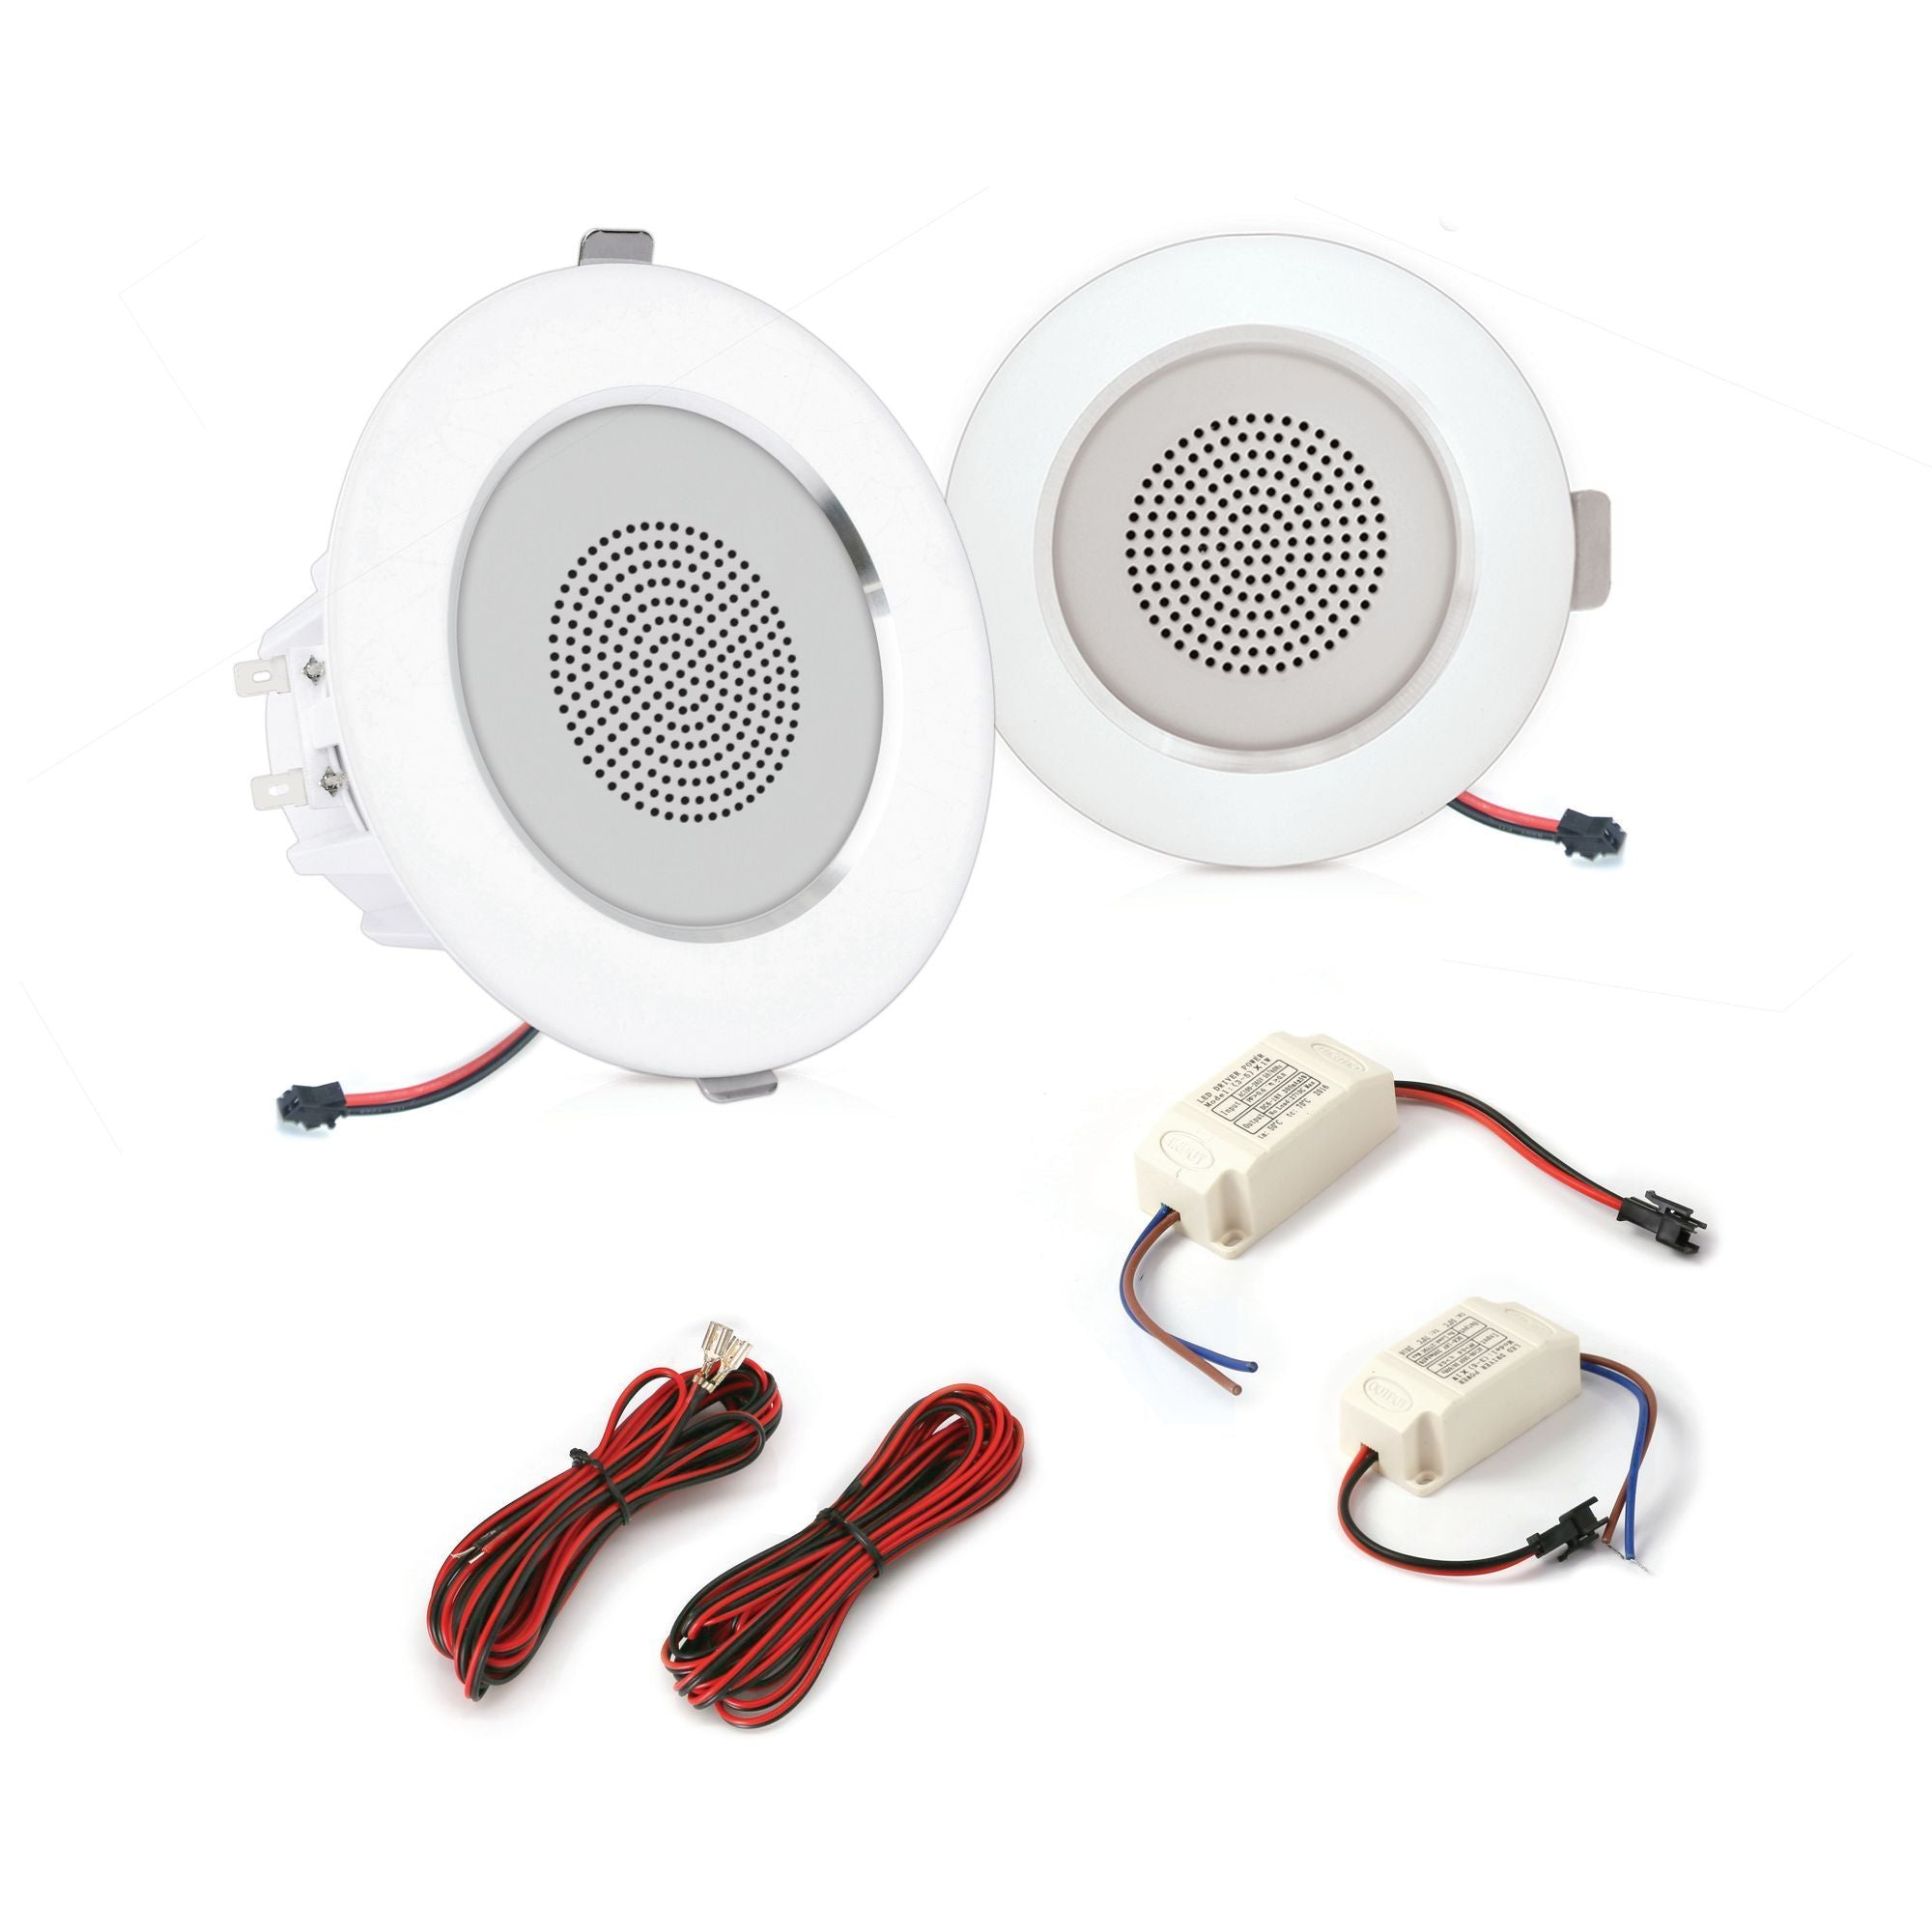 "Pyle Pair of 4"" 2-Way Home Speaker System, In-wall/Ceiling, LED Lights, 2 Ch. Amplifier (PDICLE4)"